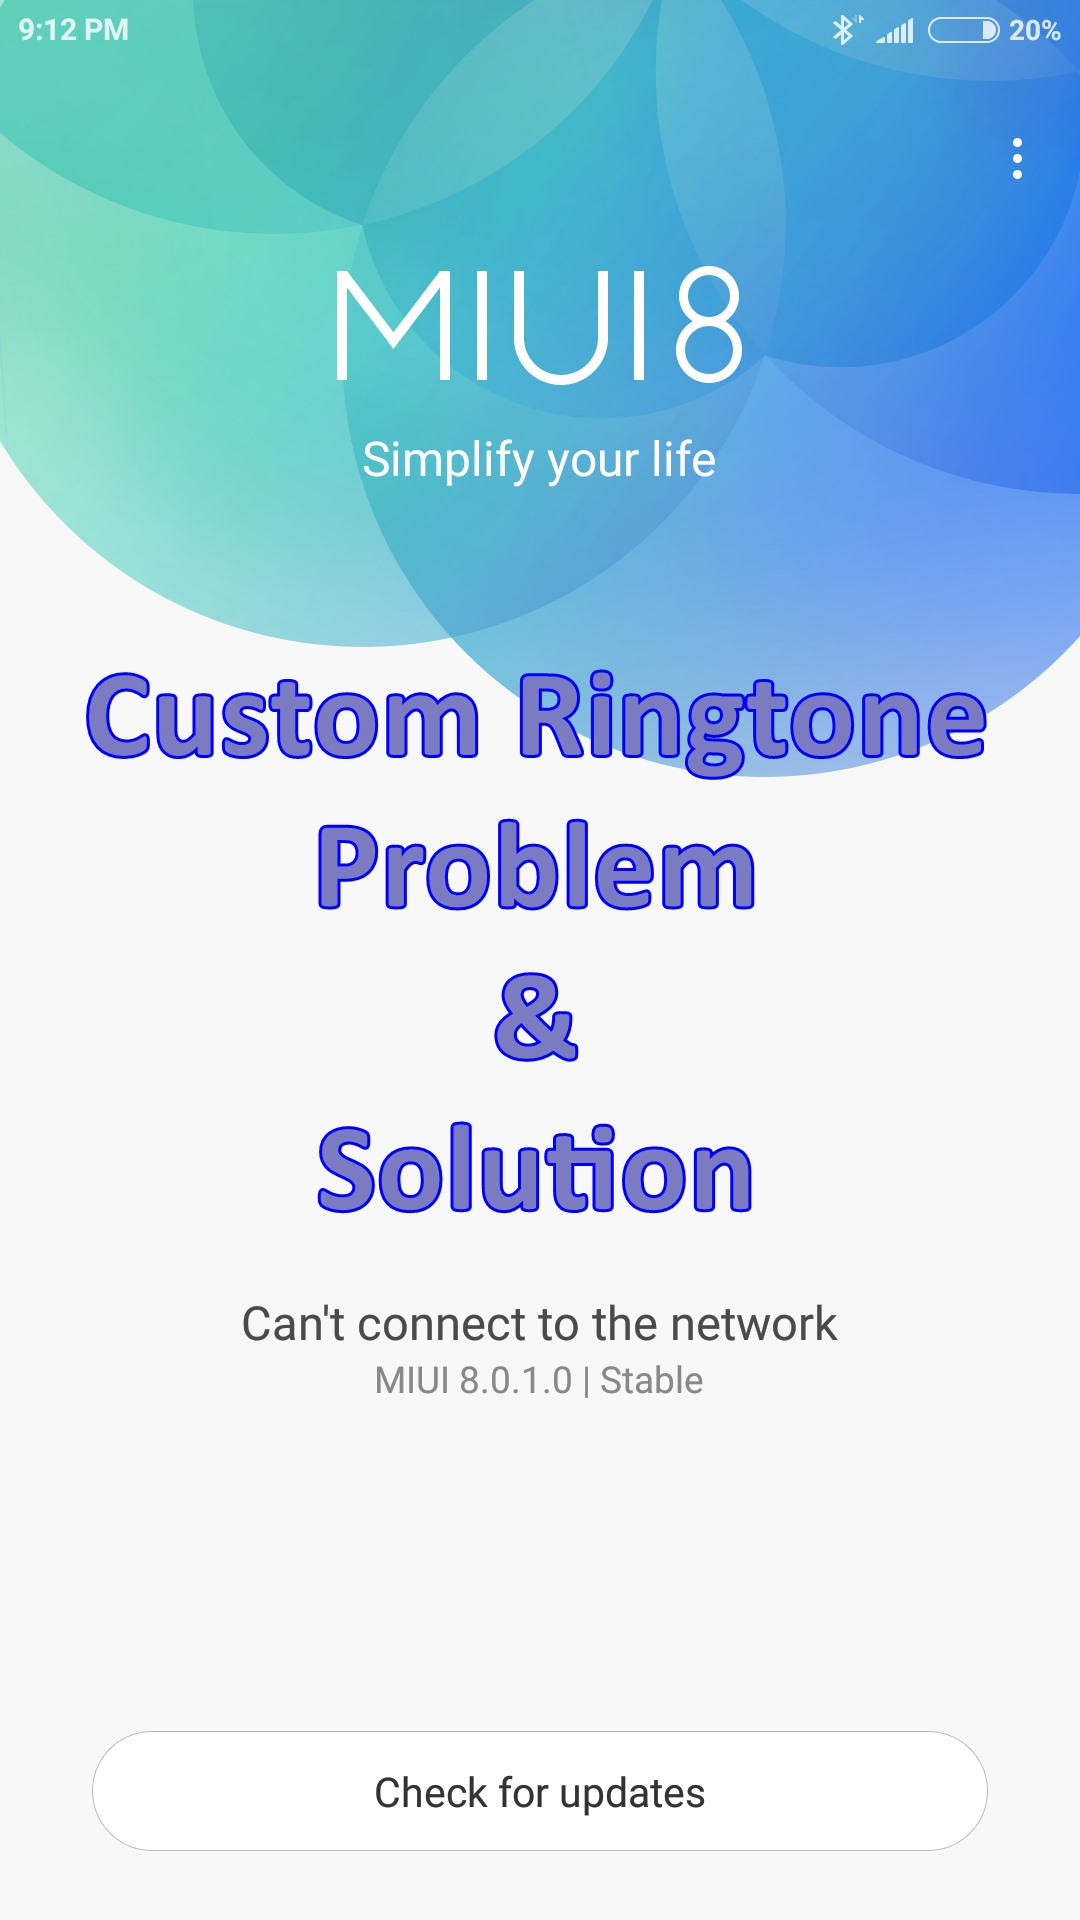 MIUI 8 Ringtone Issue Solved